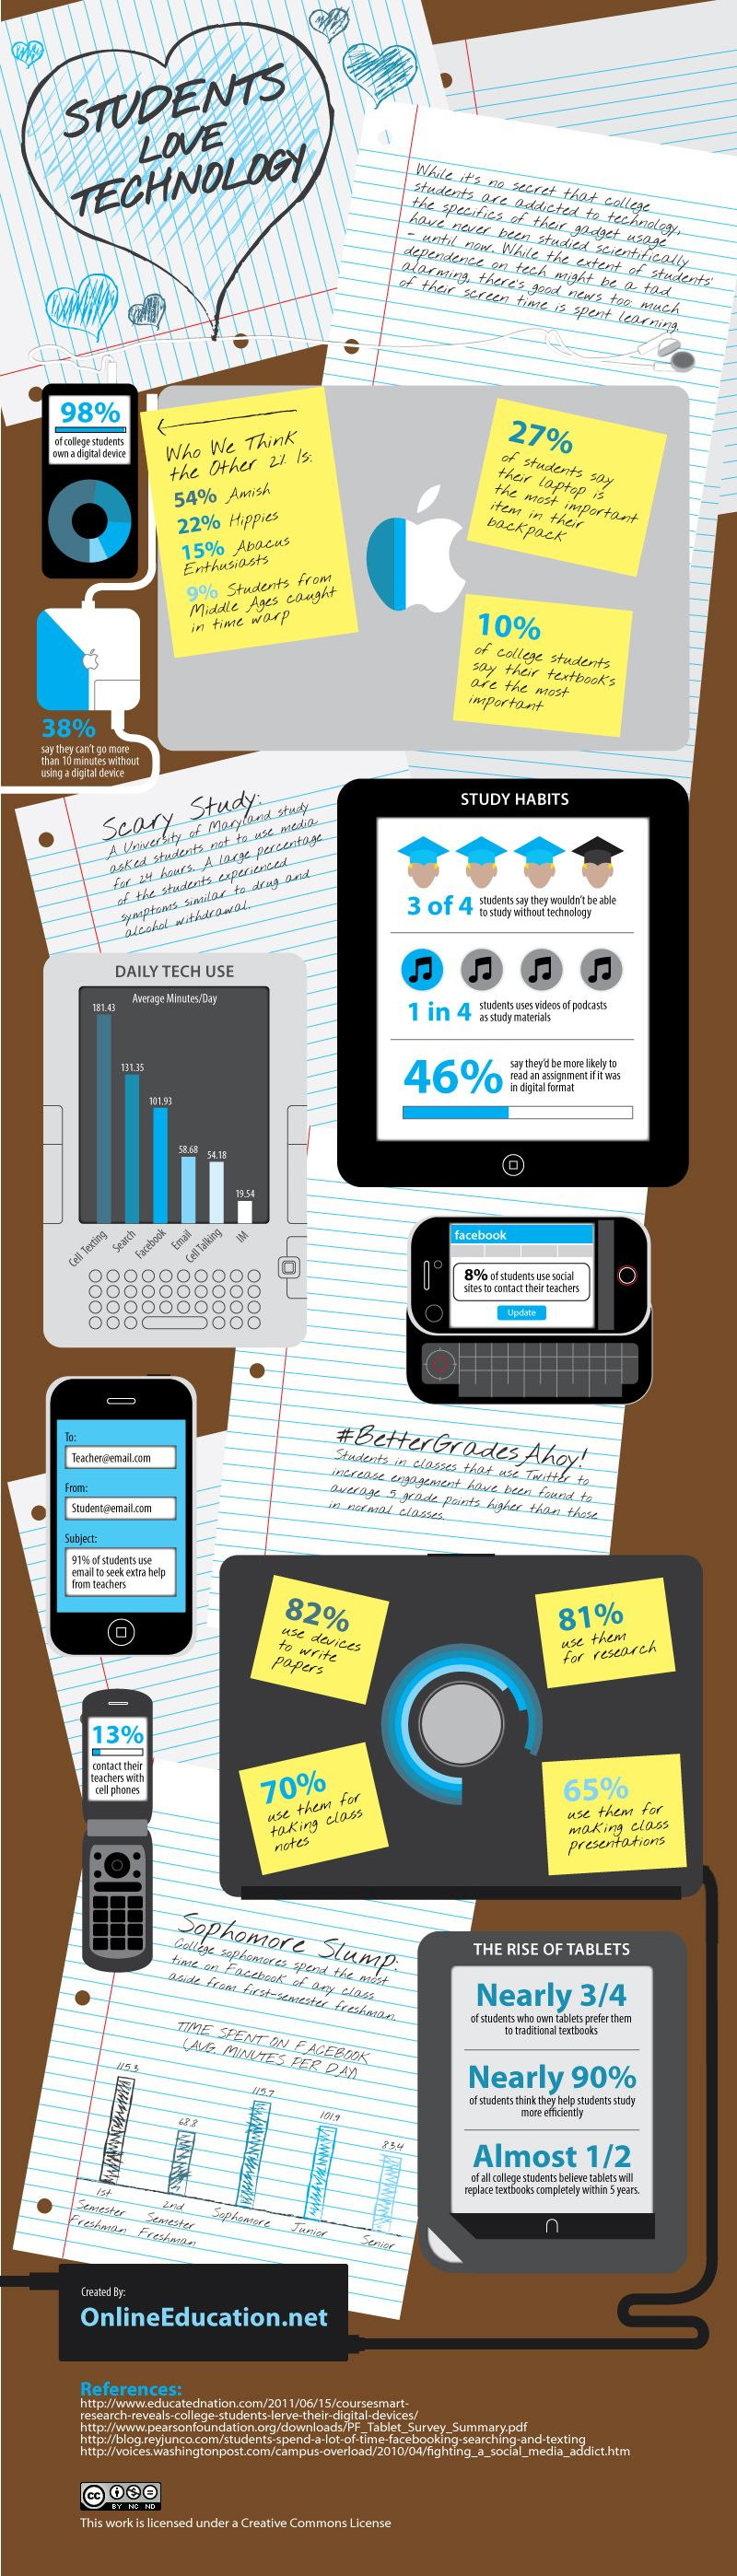 How students use technology